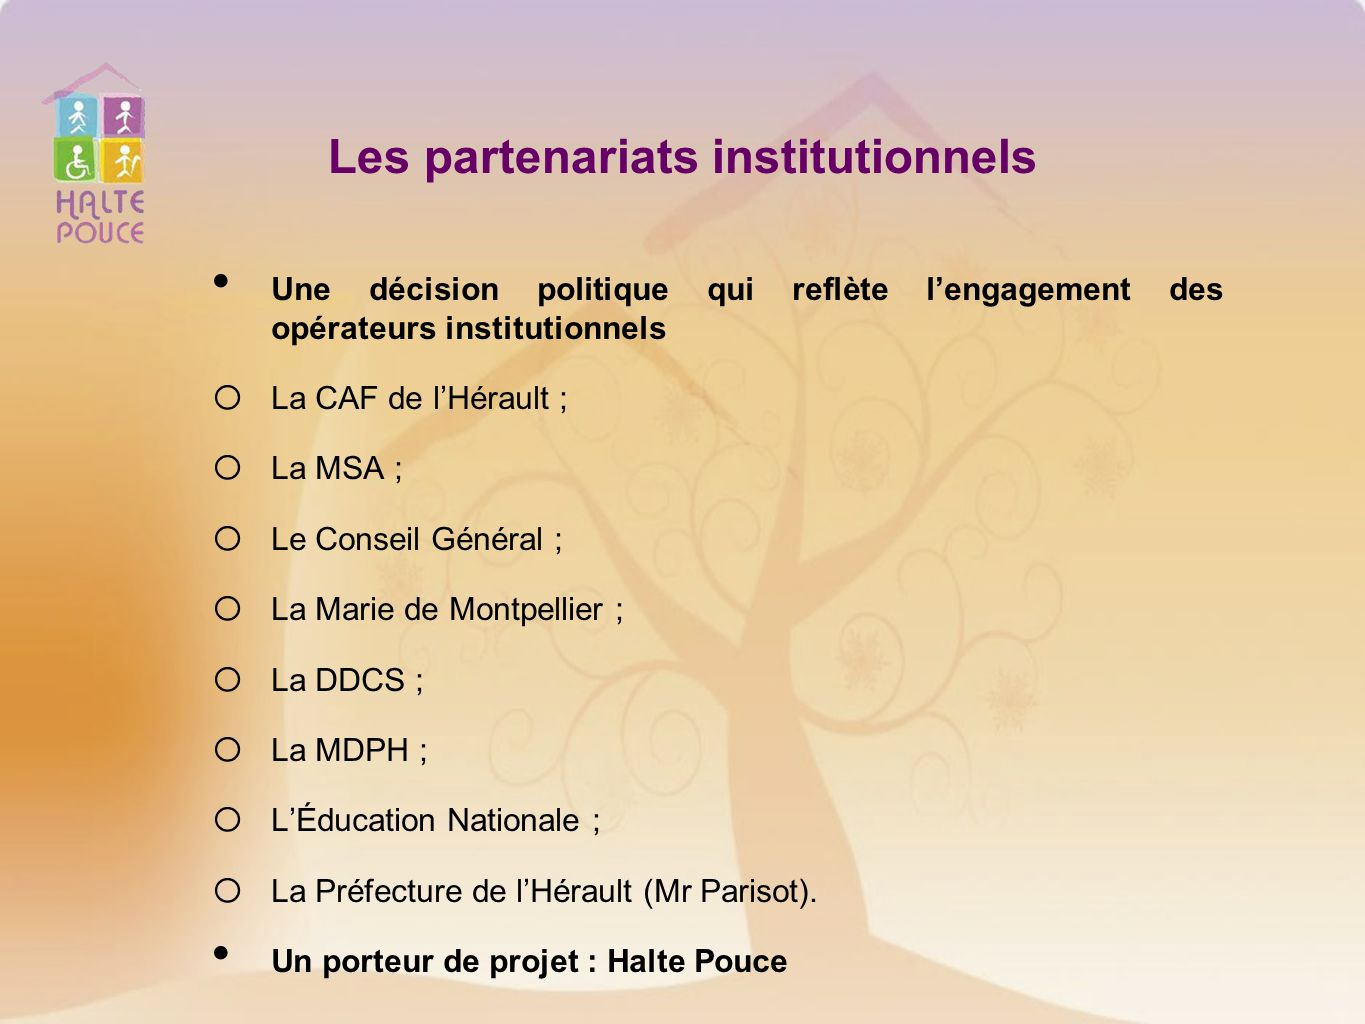 Les partenariats institutionnels